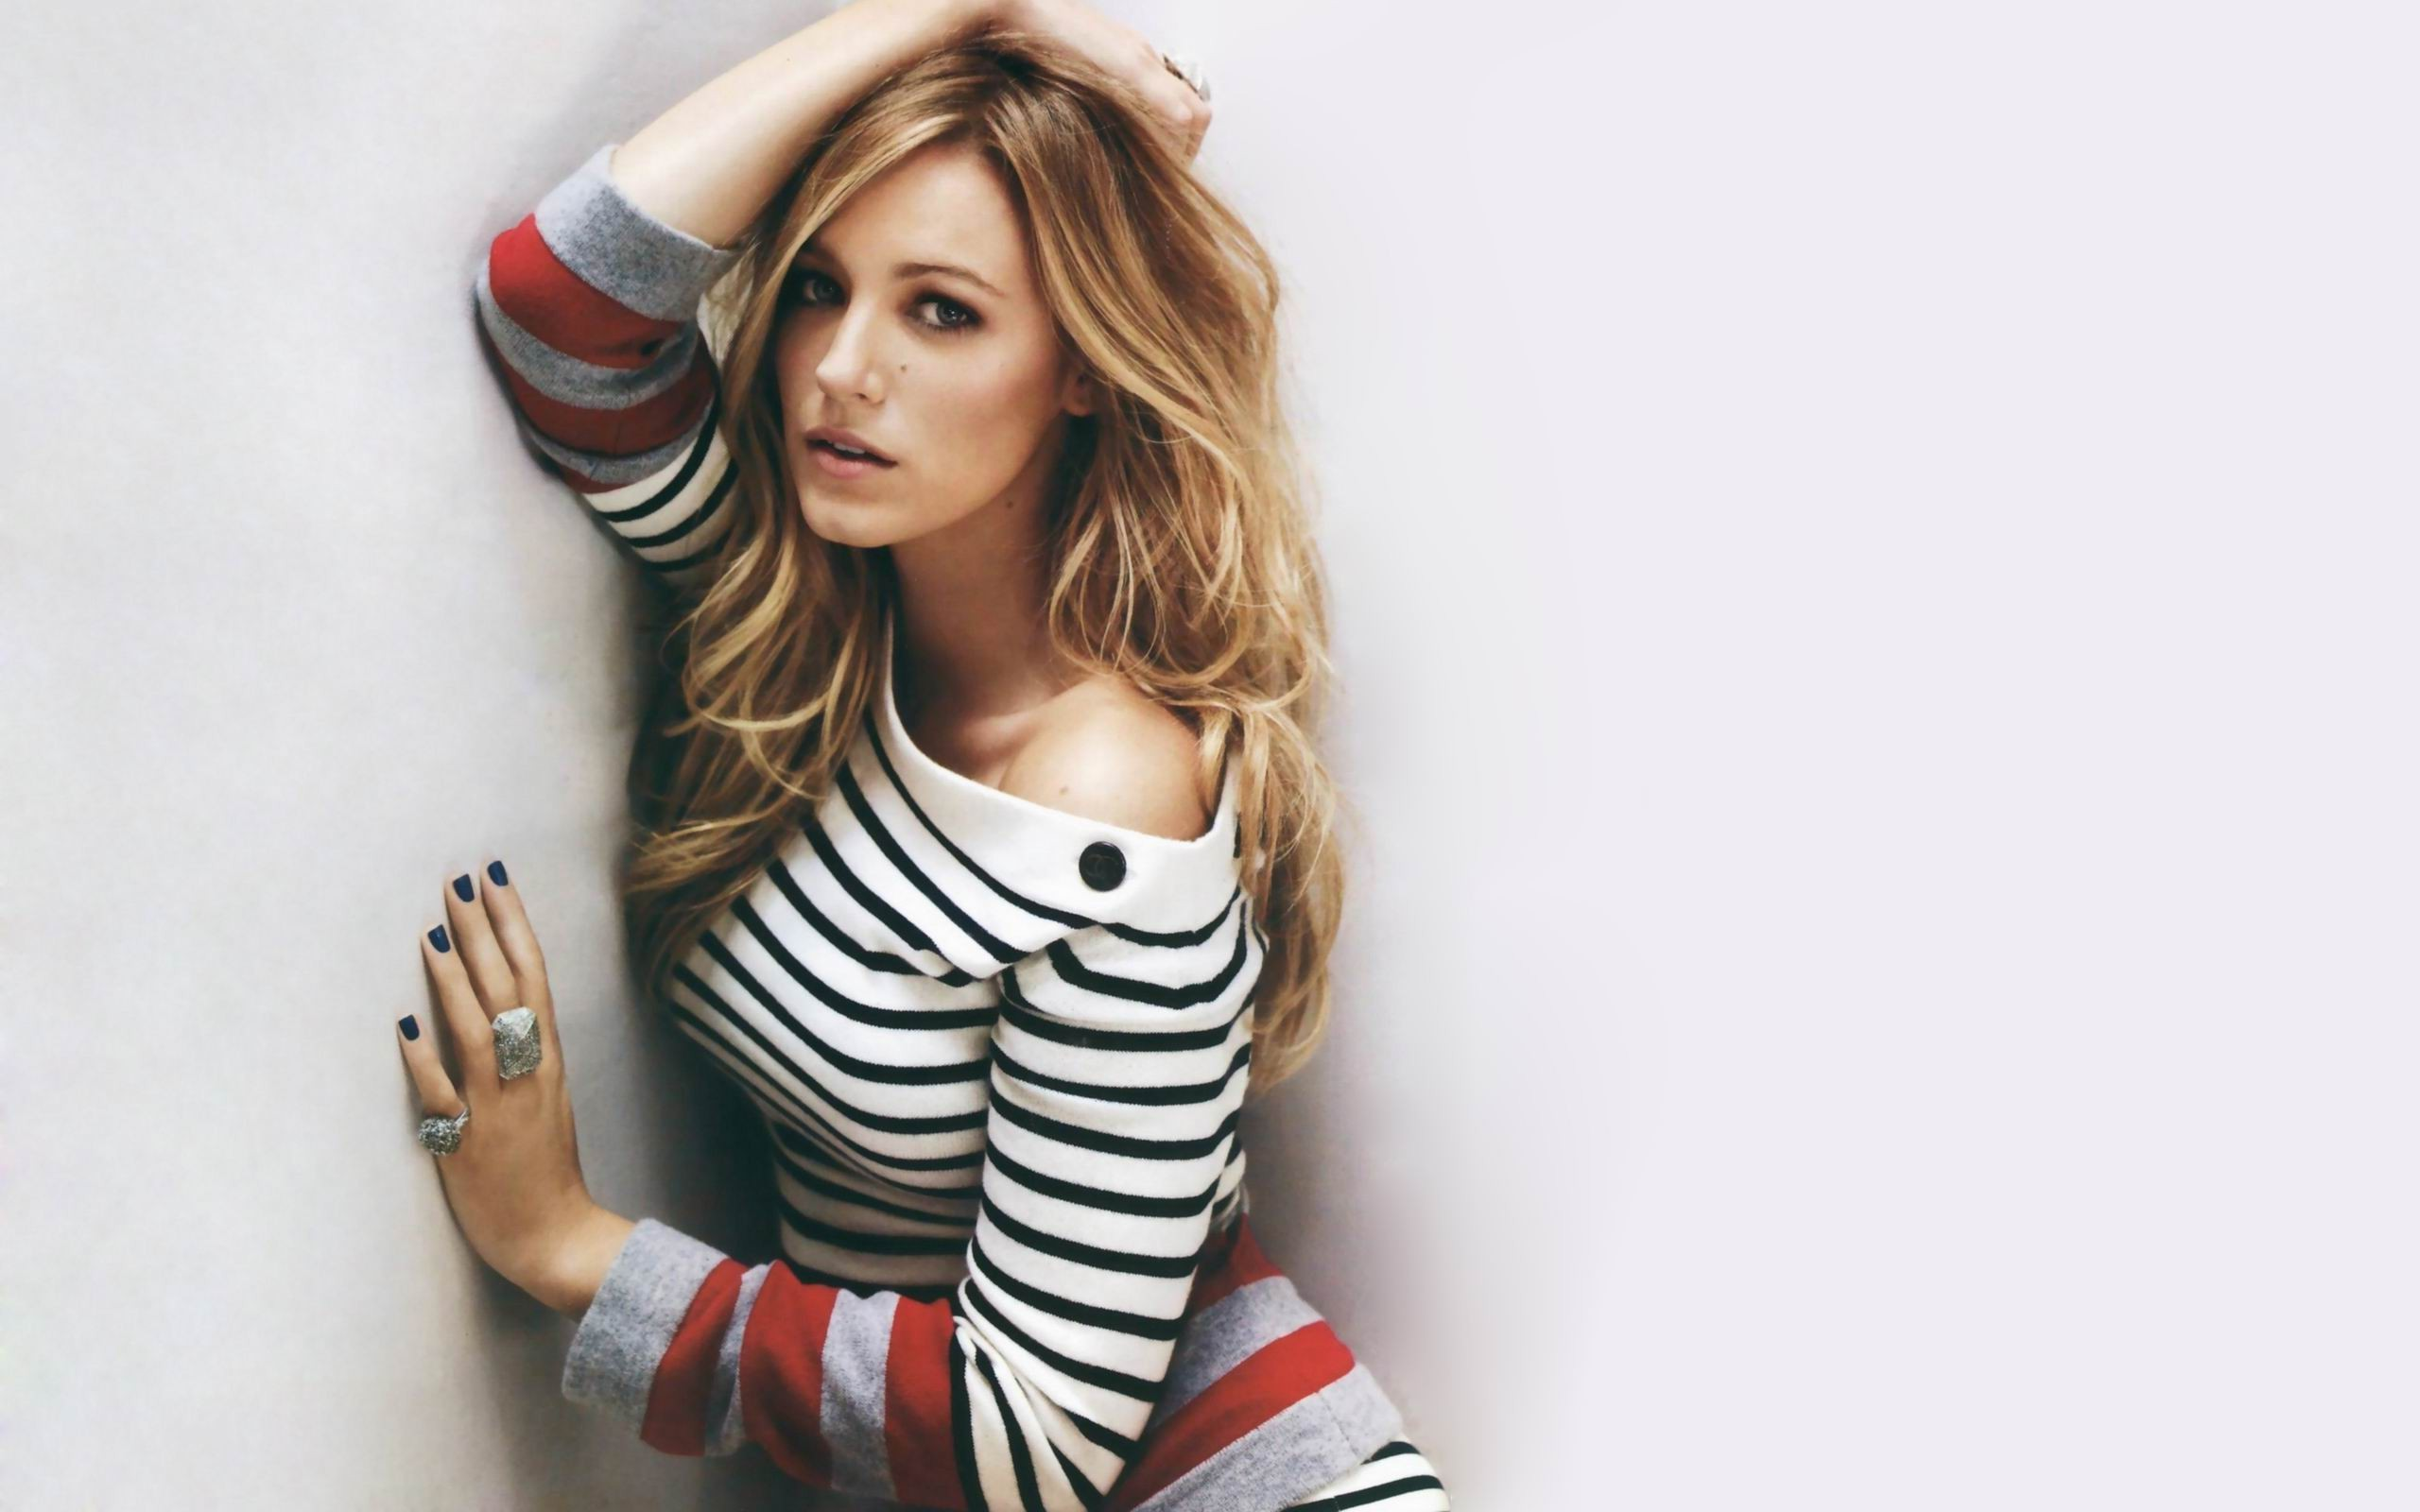 Blake Lively Wallpapers High Resolution and Quality Download Blake Lively